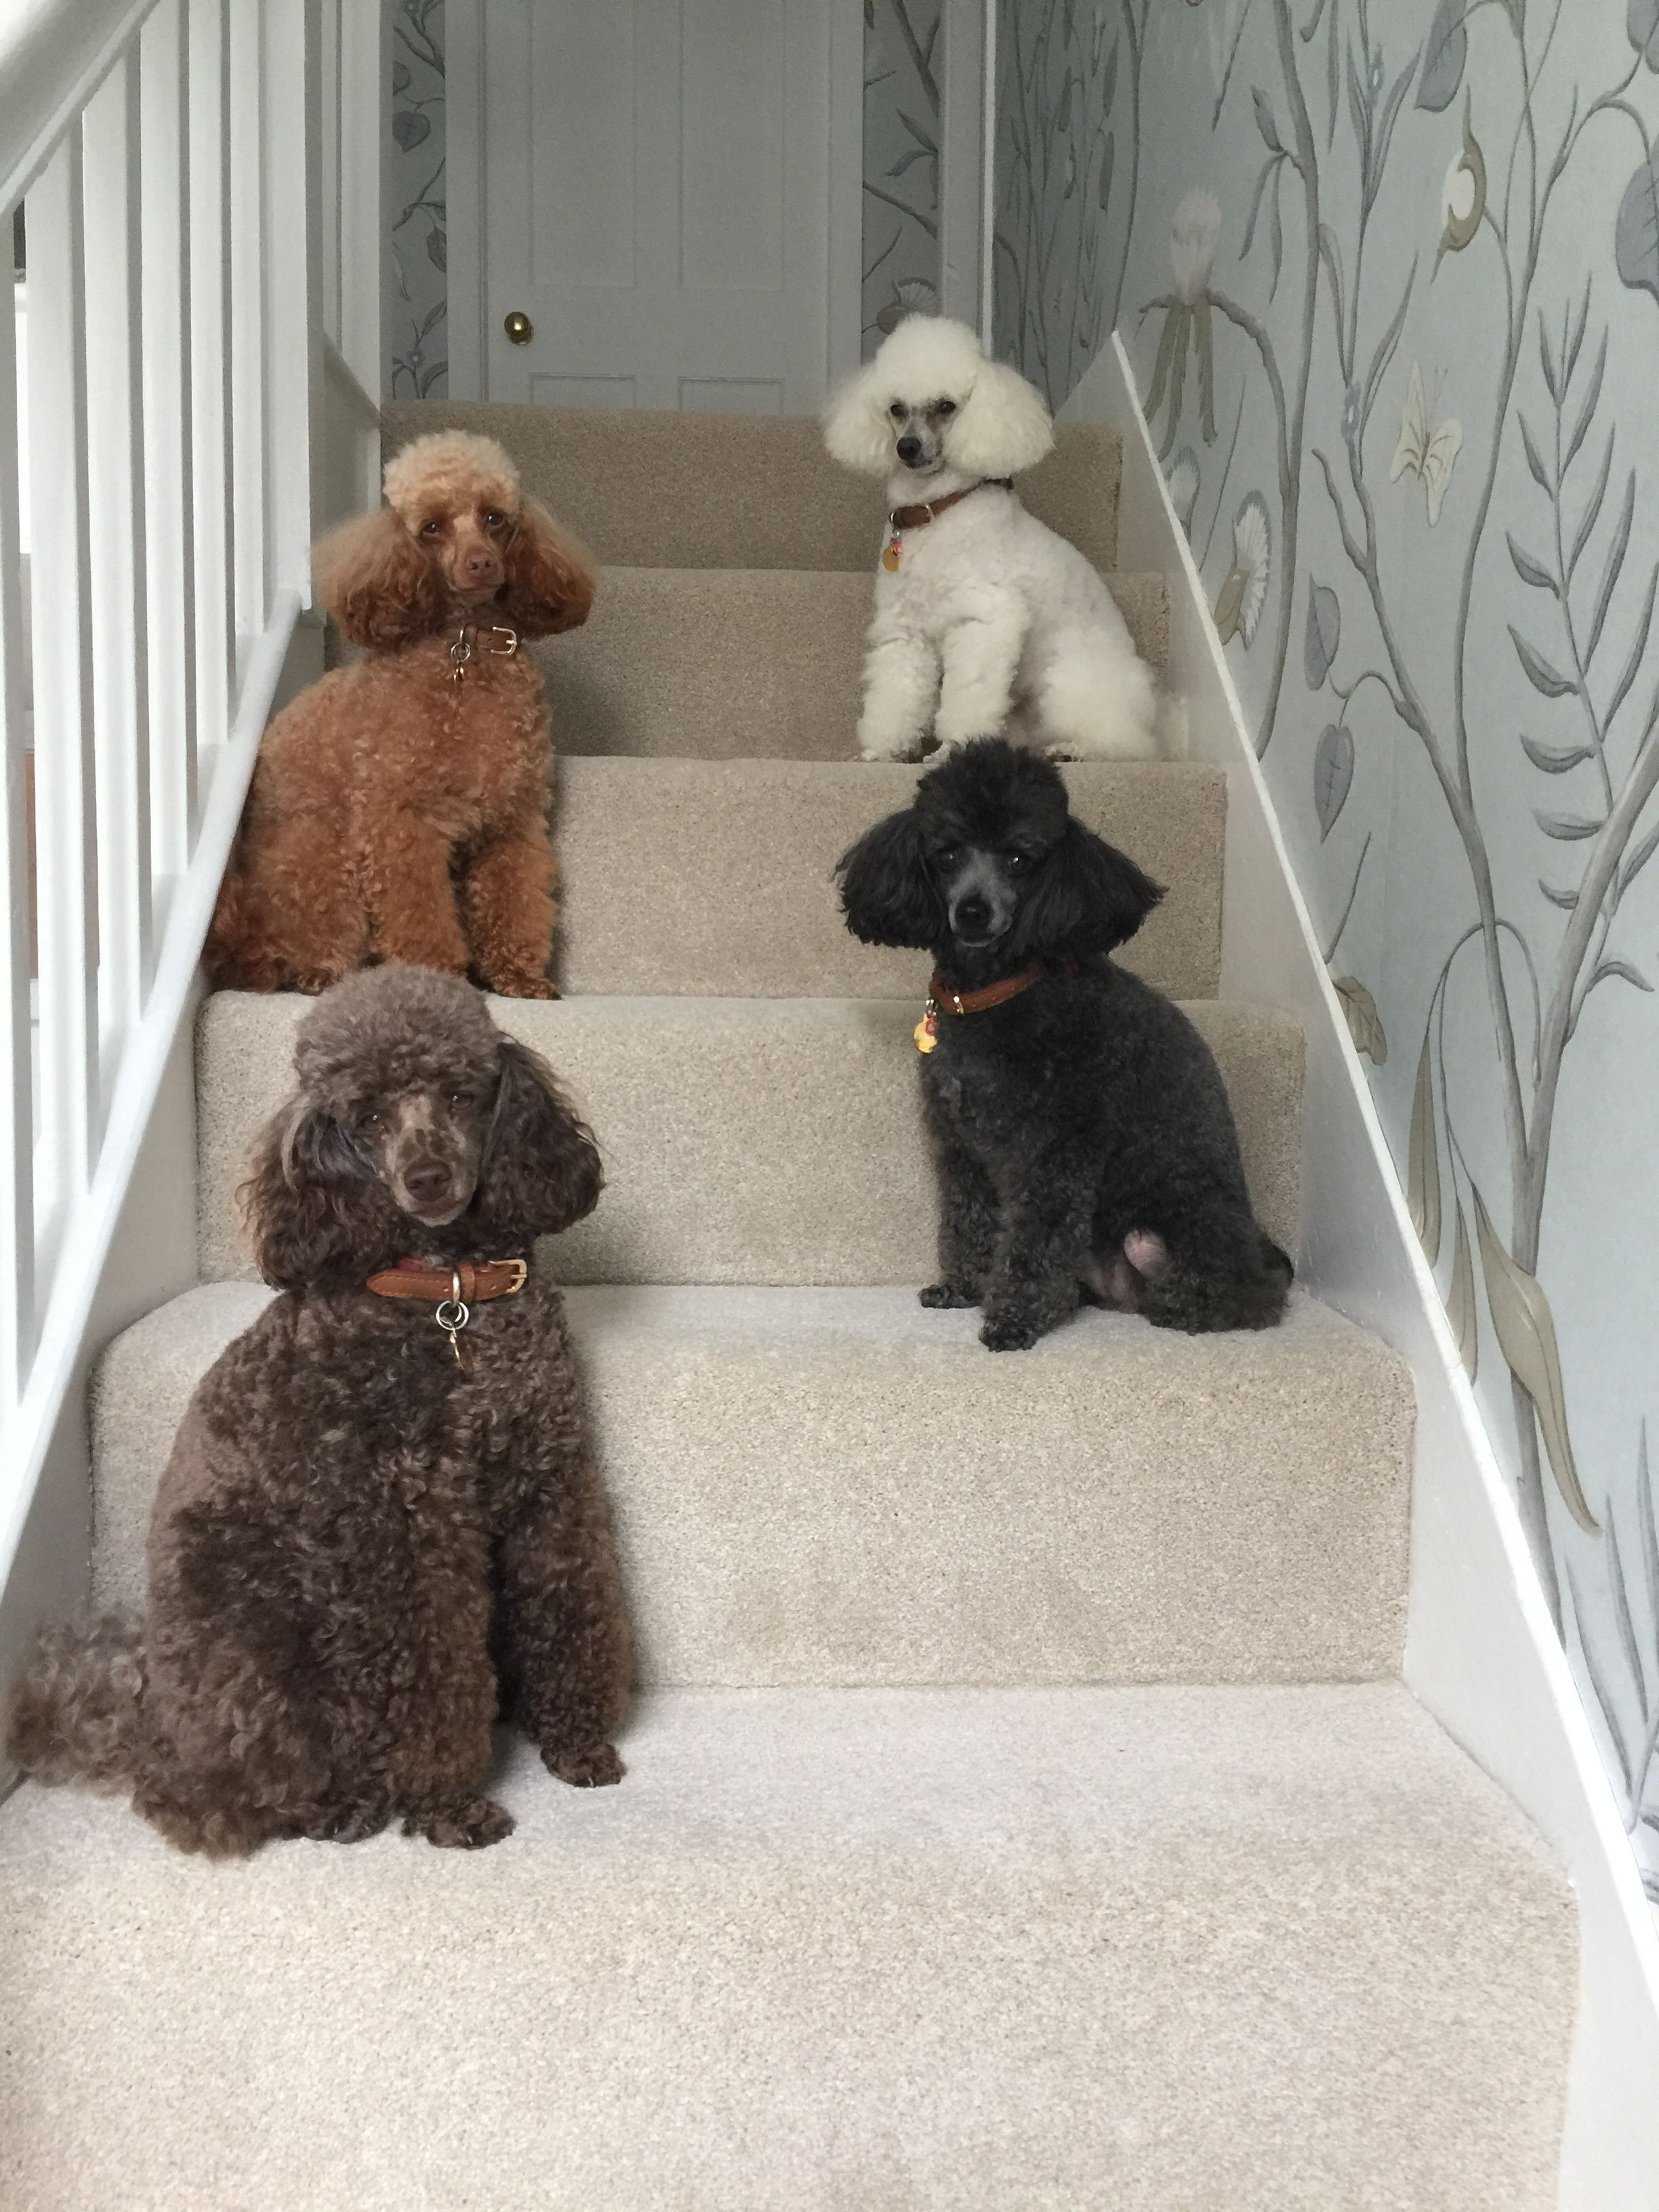 Poodle The Adorable Dog In 2020 With Images Brown Toy Poodle